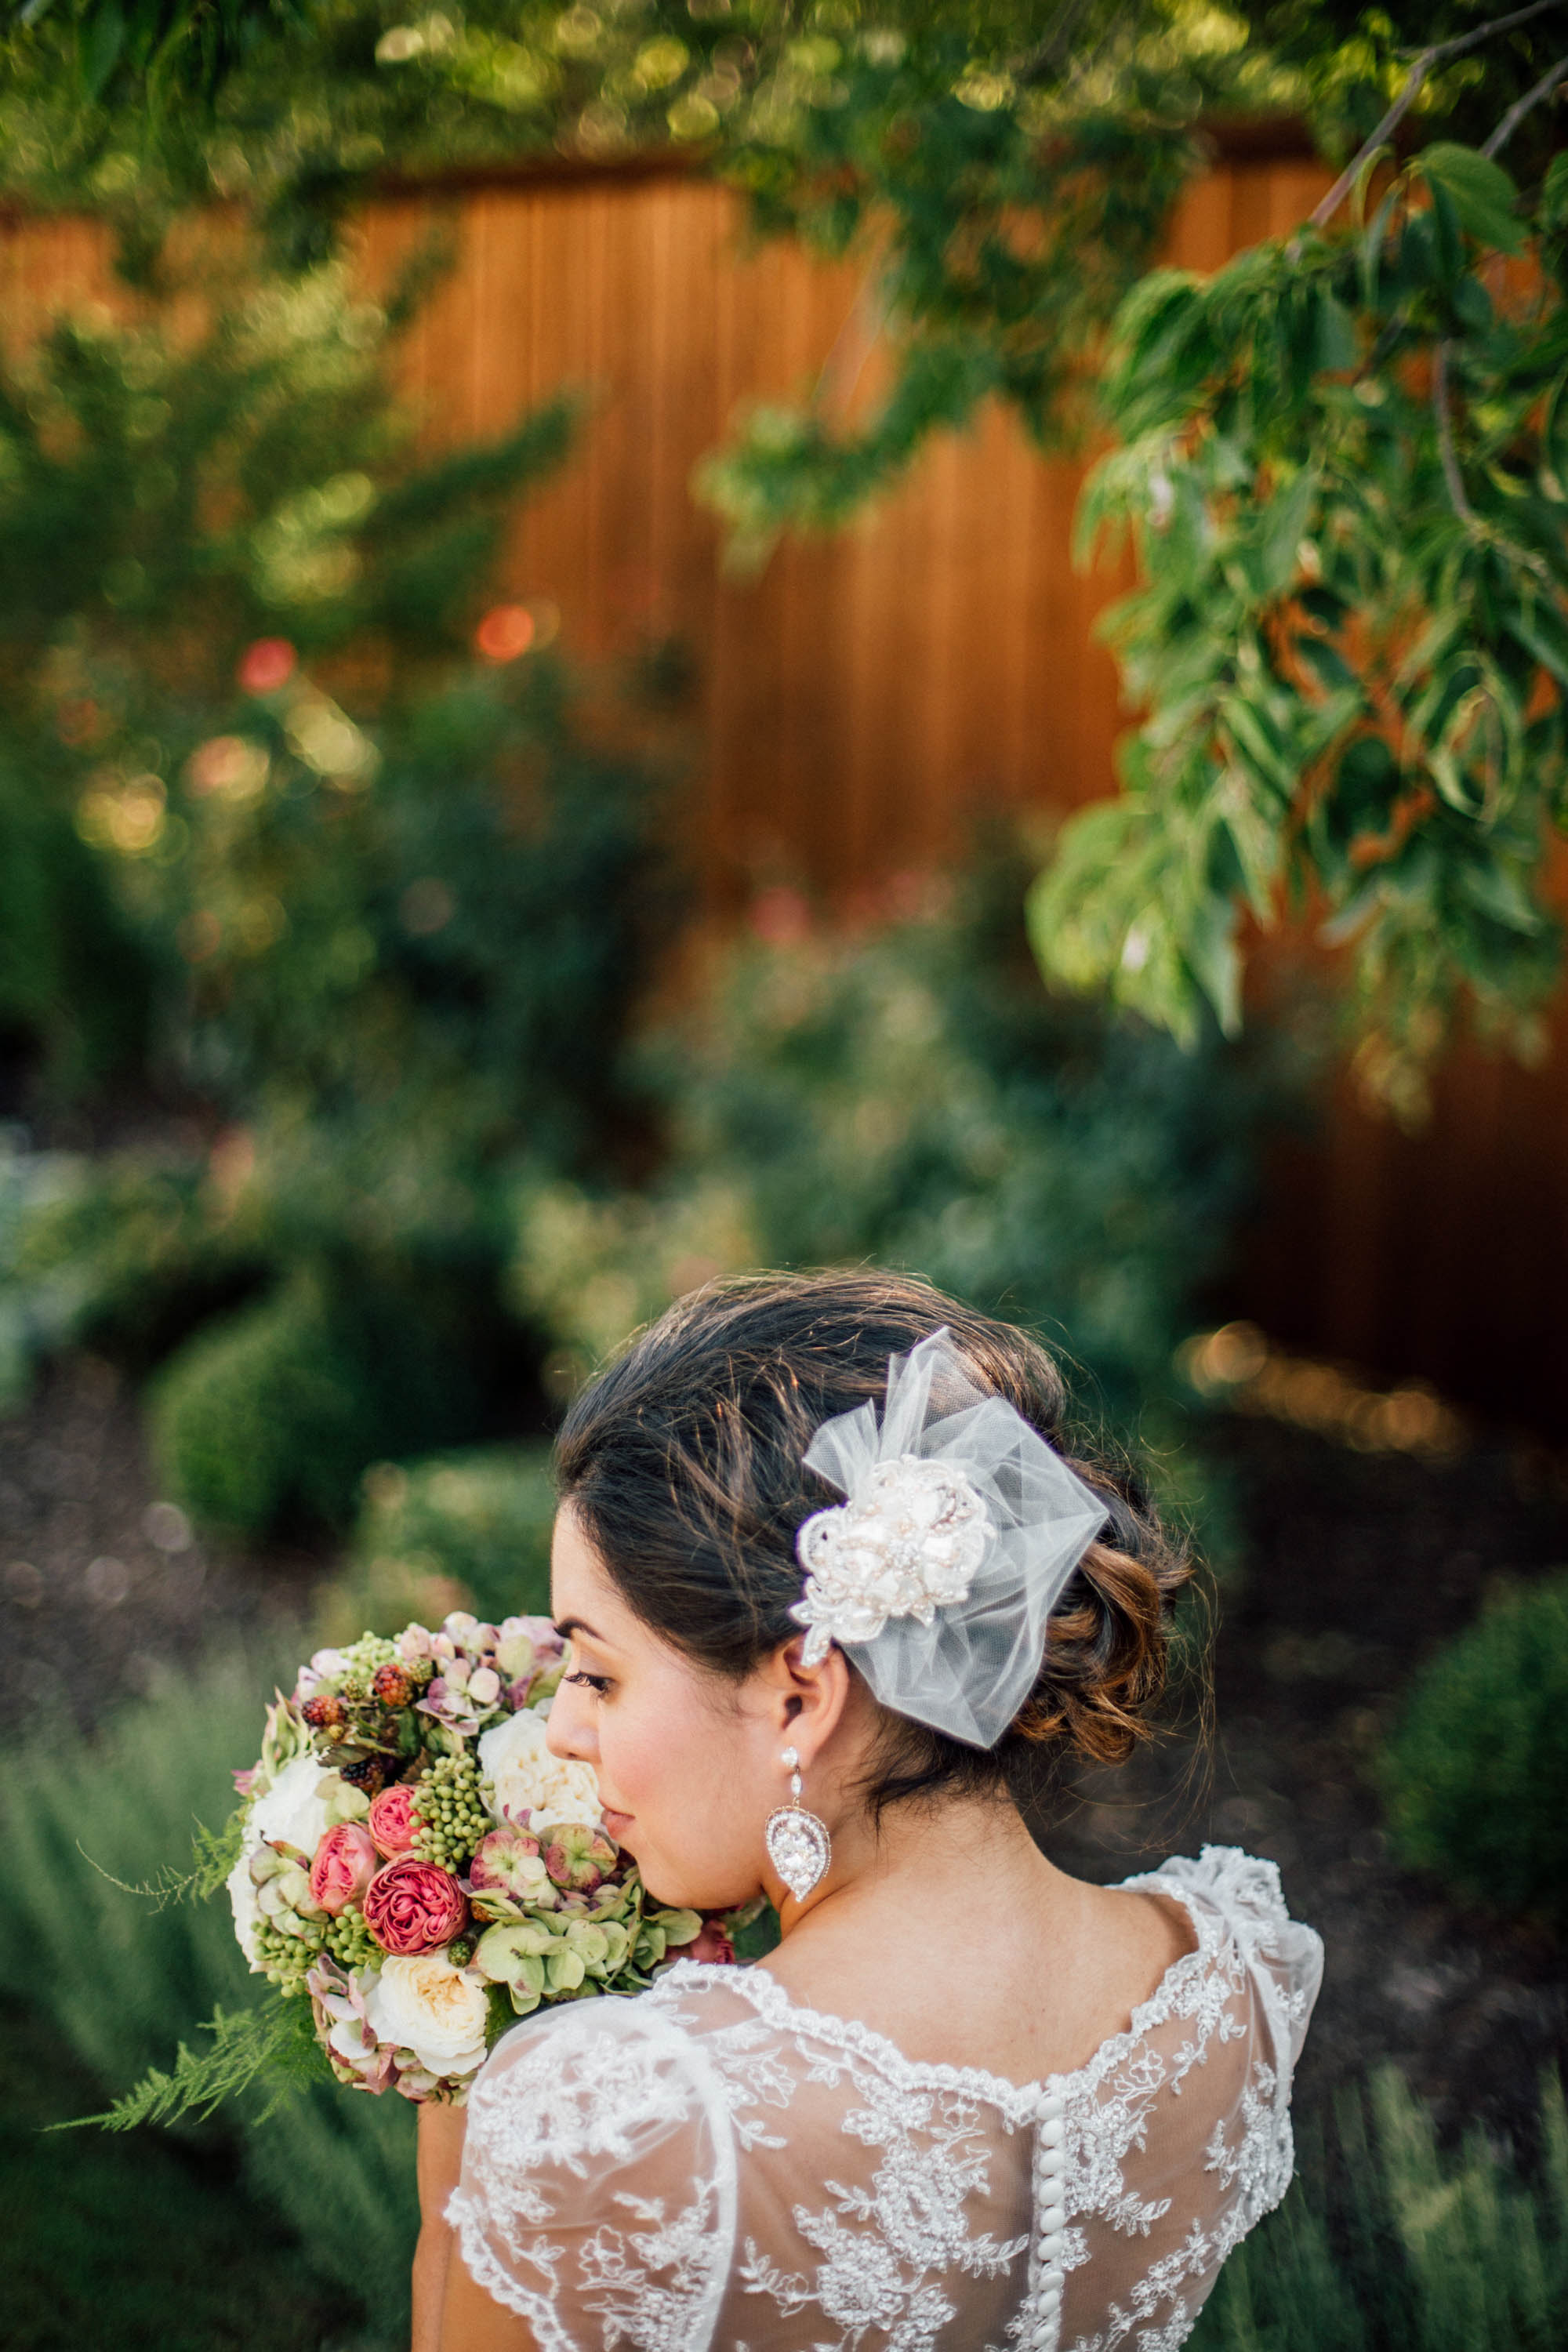 Wedding-Photographer-Dallas-Bridal-Portrait-Catherine-Florals.jpg